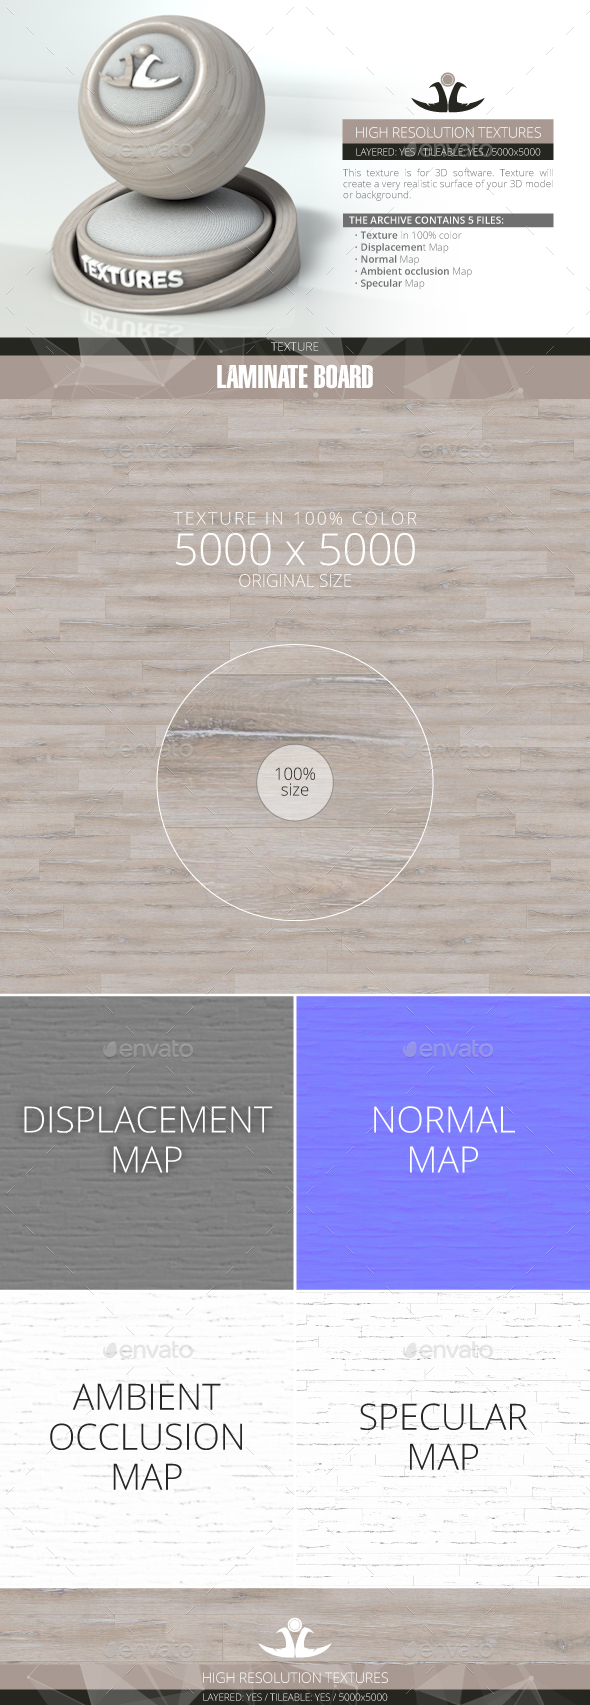 Laminate Board 67 - 3DOcean Item for Sale